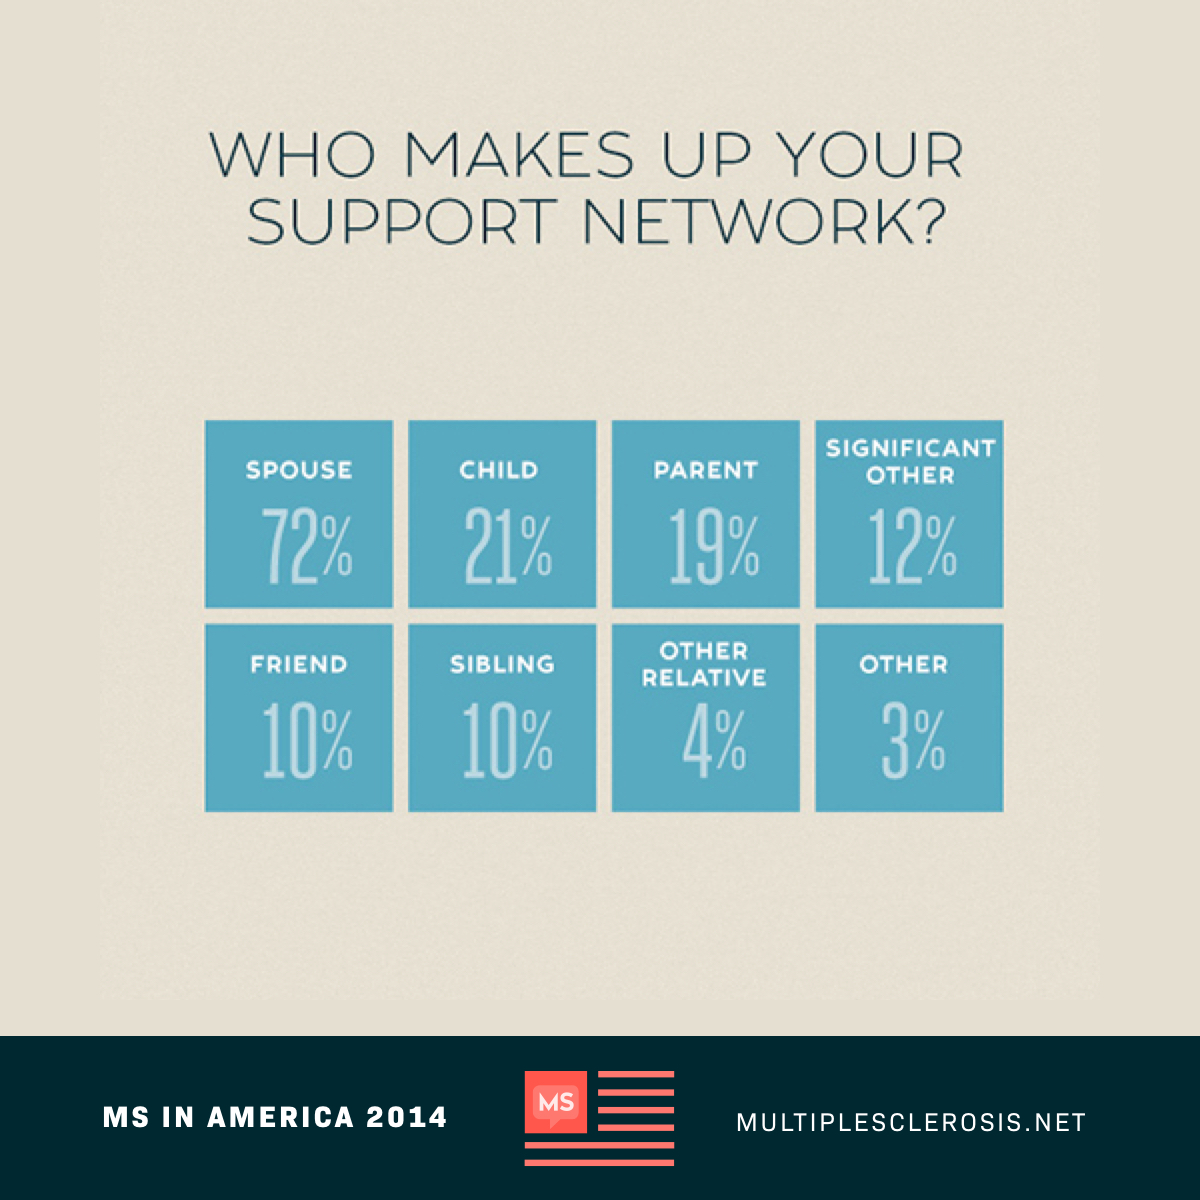 Who Makes Up Your Support Network?